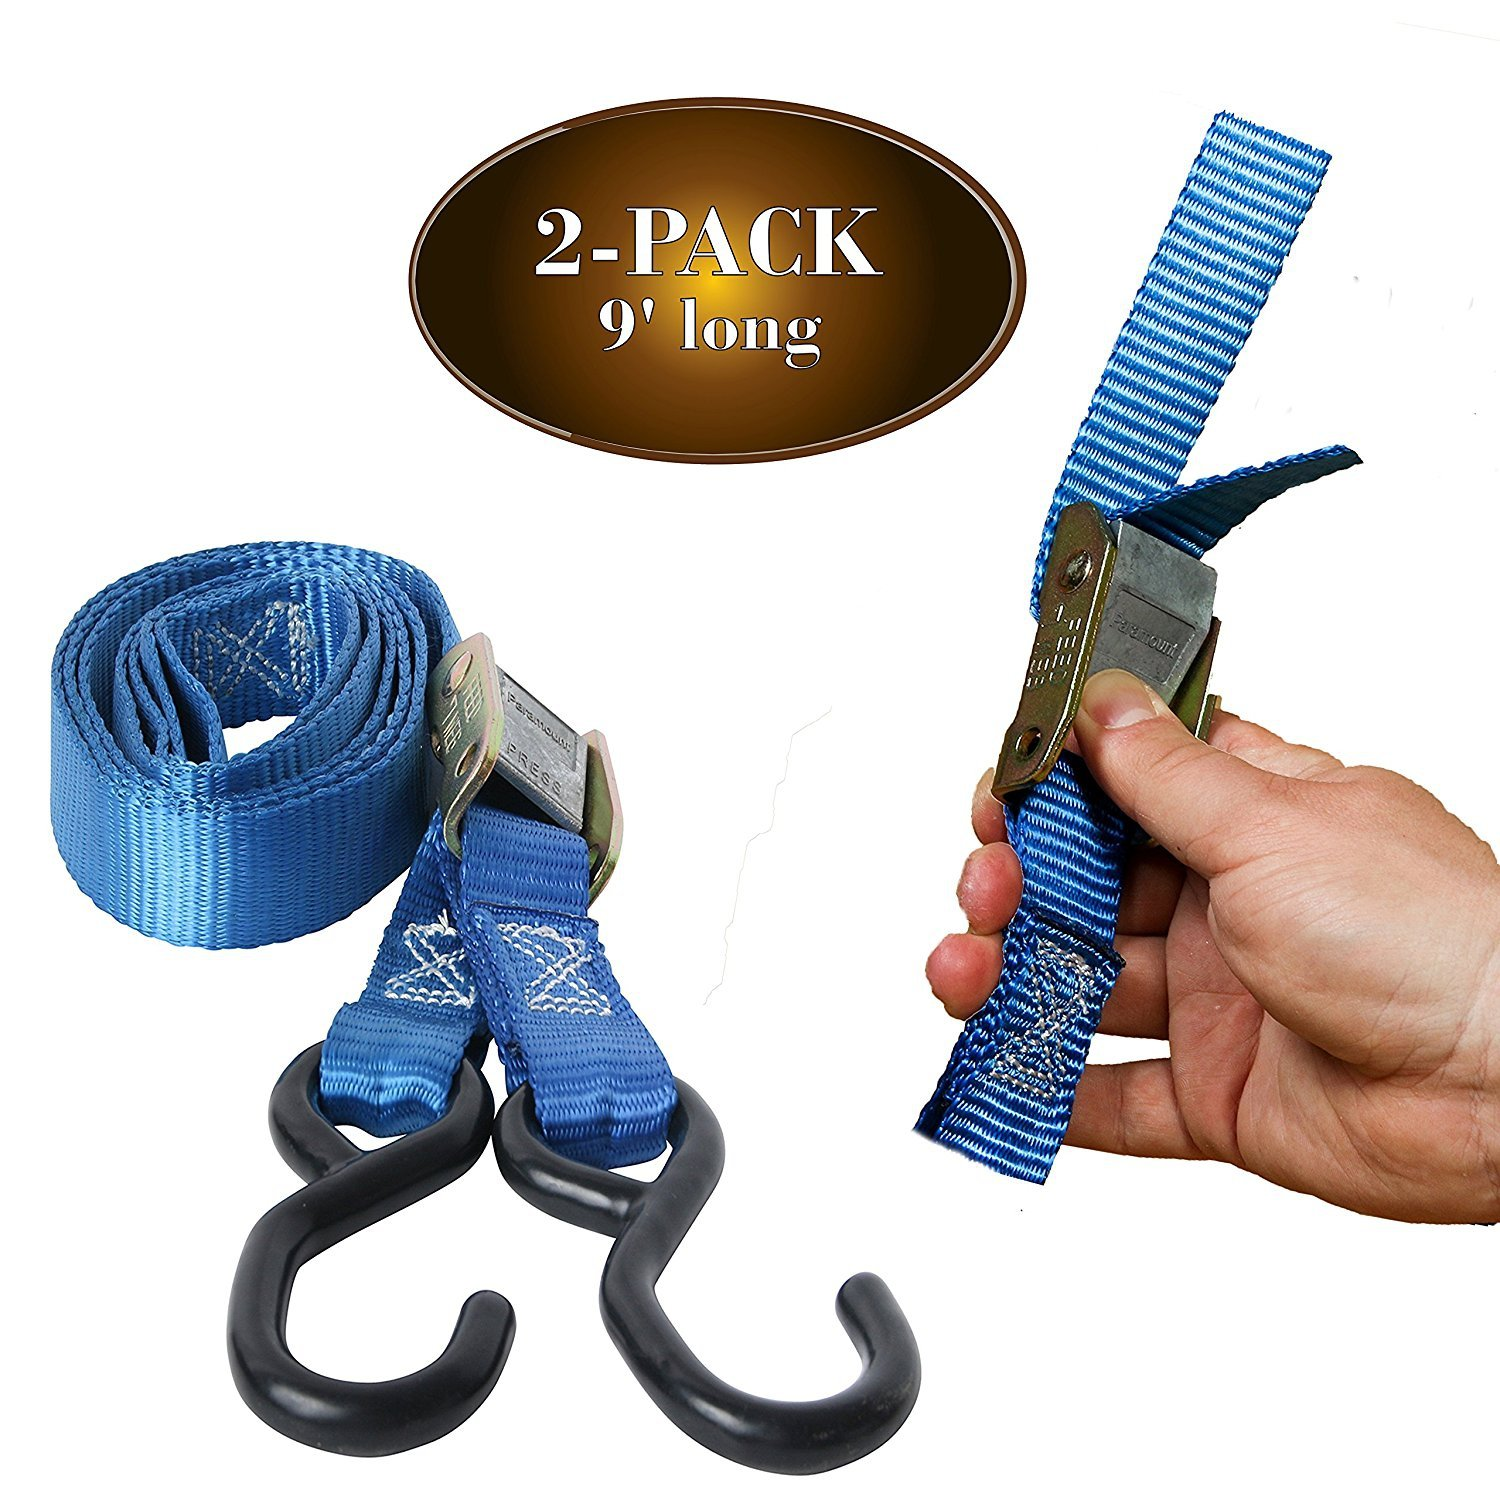 """2 Motorcycle Kayak Tie-Down Cam Straps 1"""" x 9' Strong TieDown Straps with Durable Polyester... by Dc Cargo Mall"""